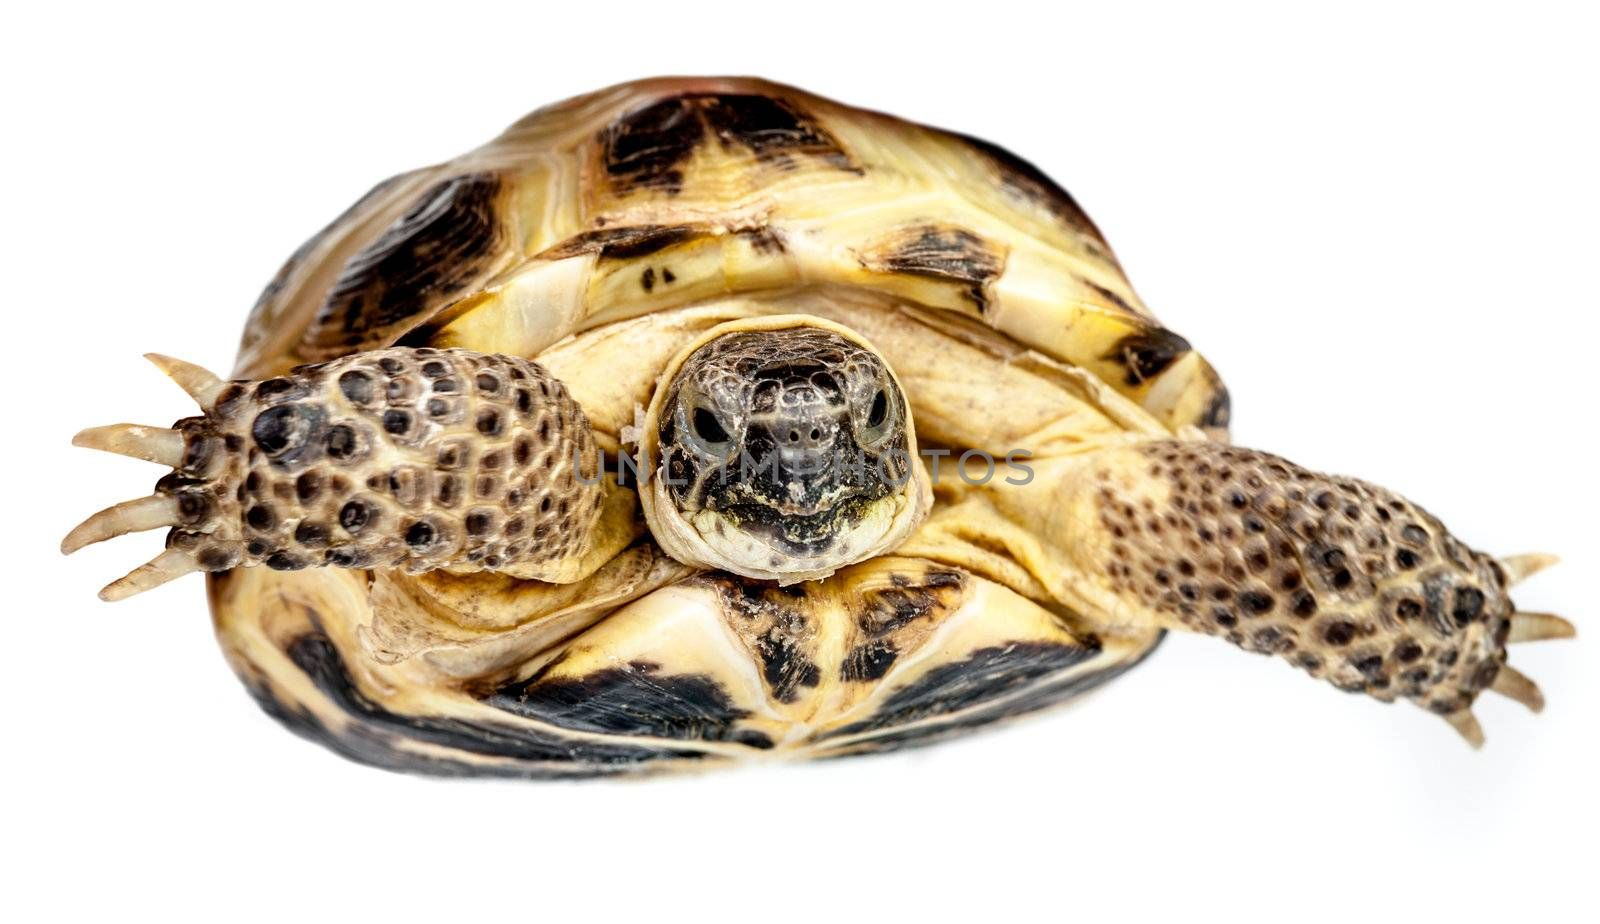 Photo of a turtle on a white background